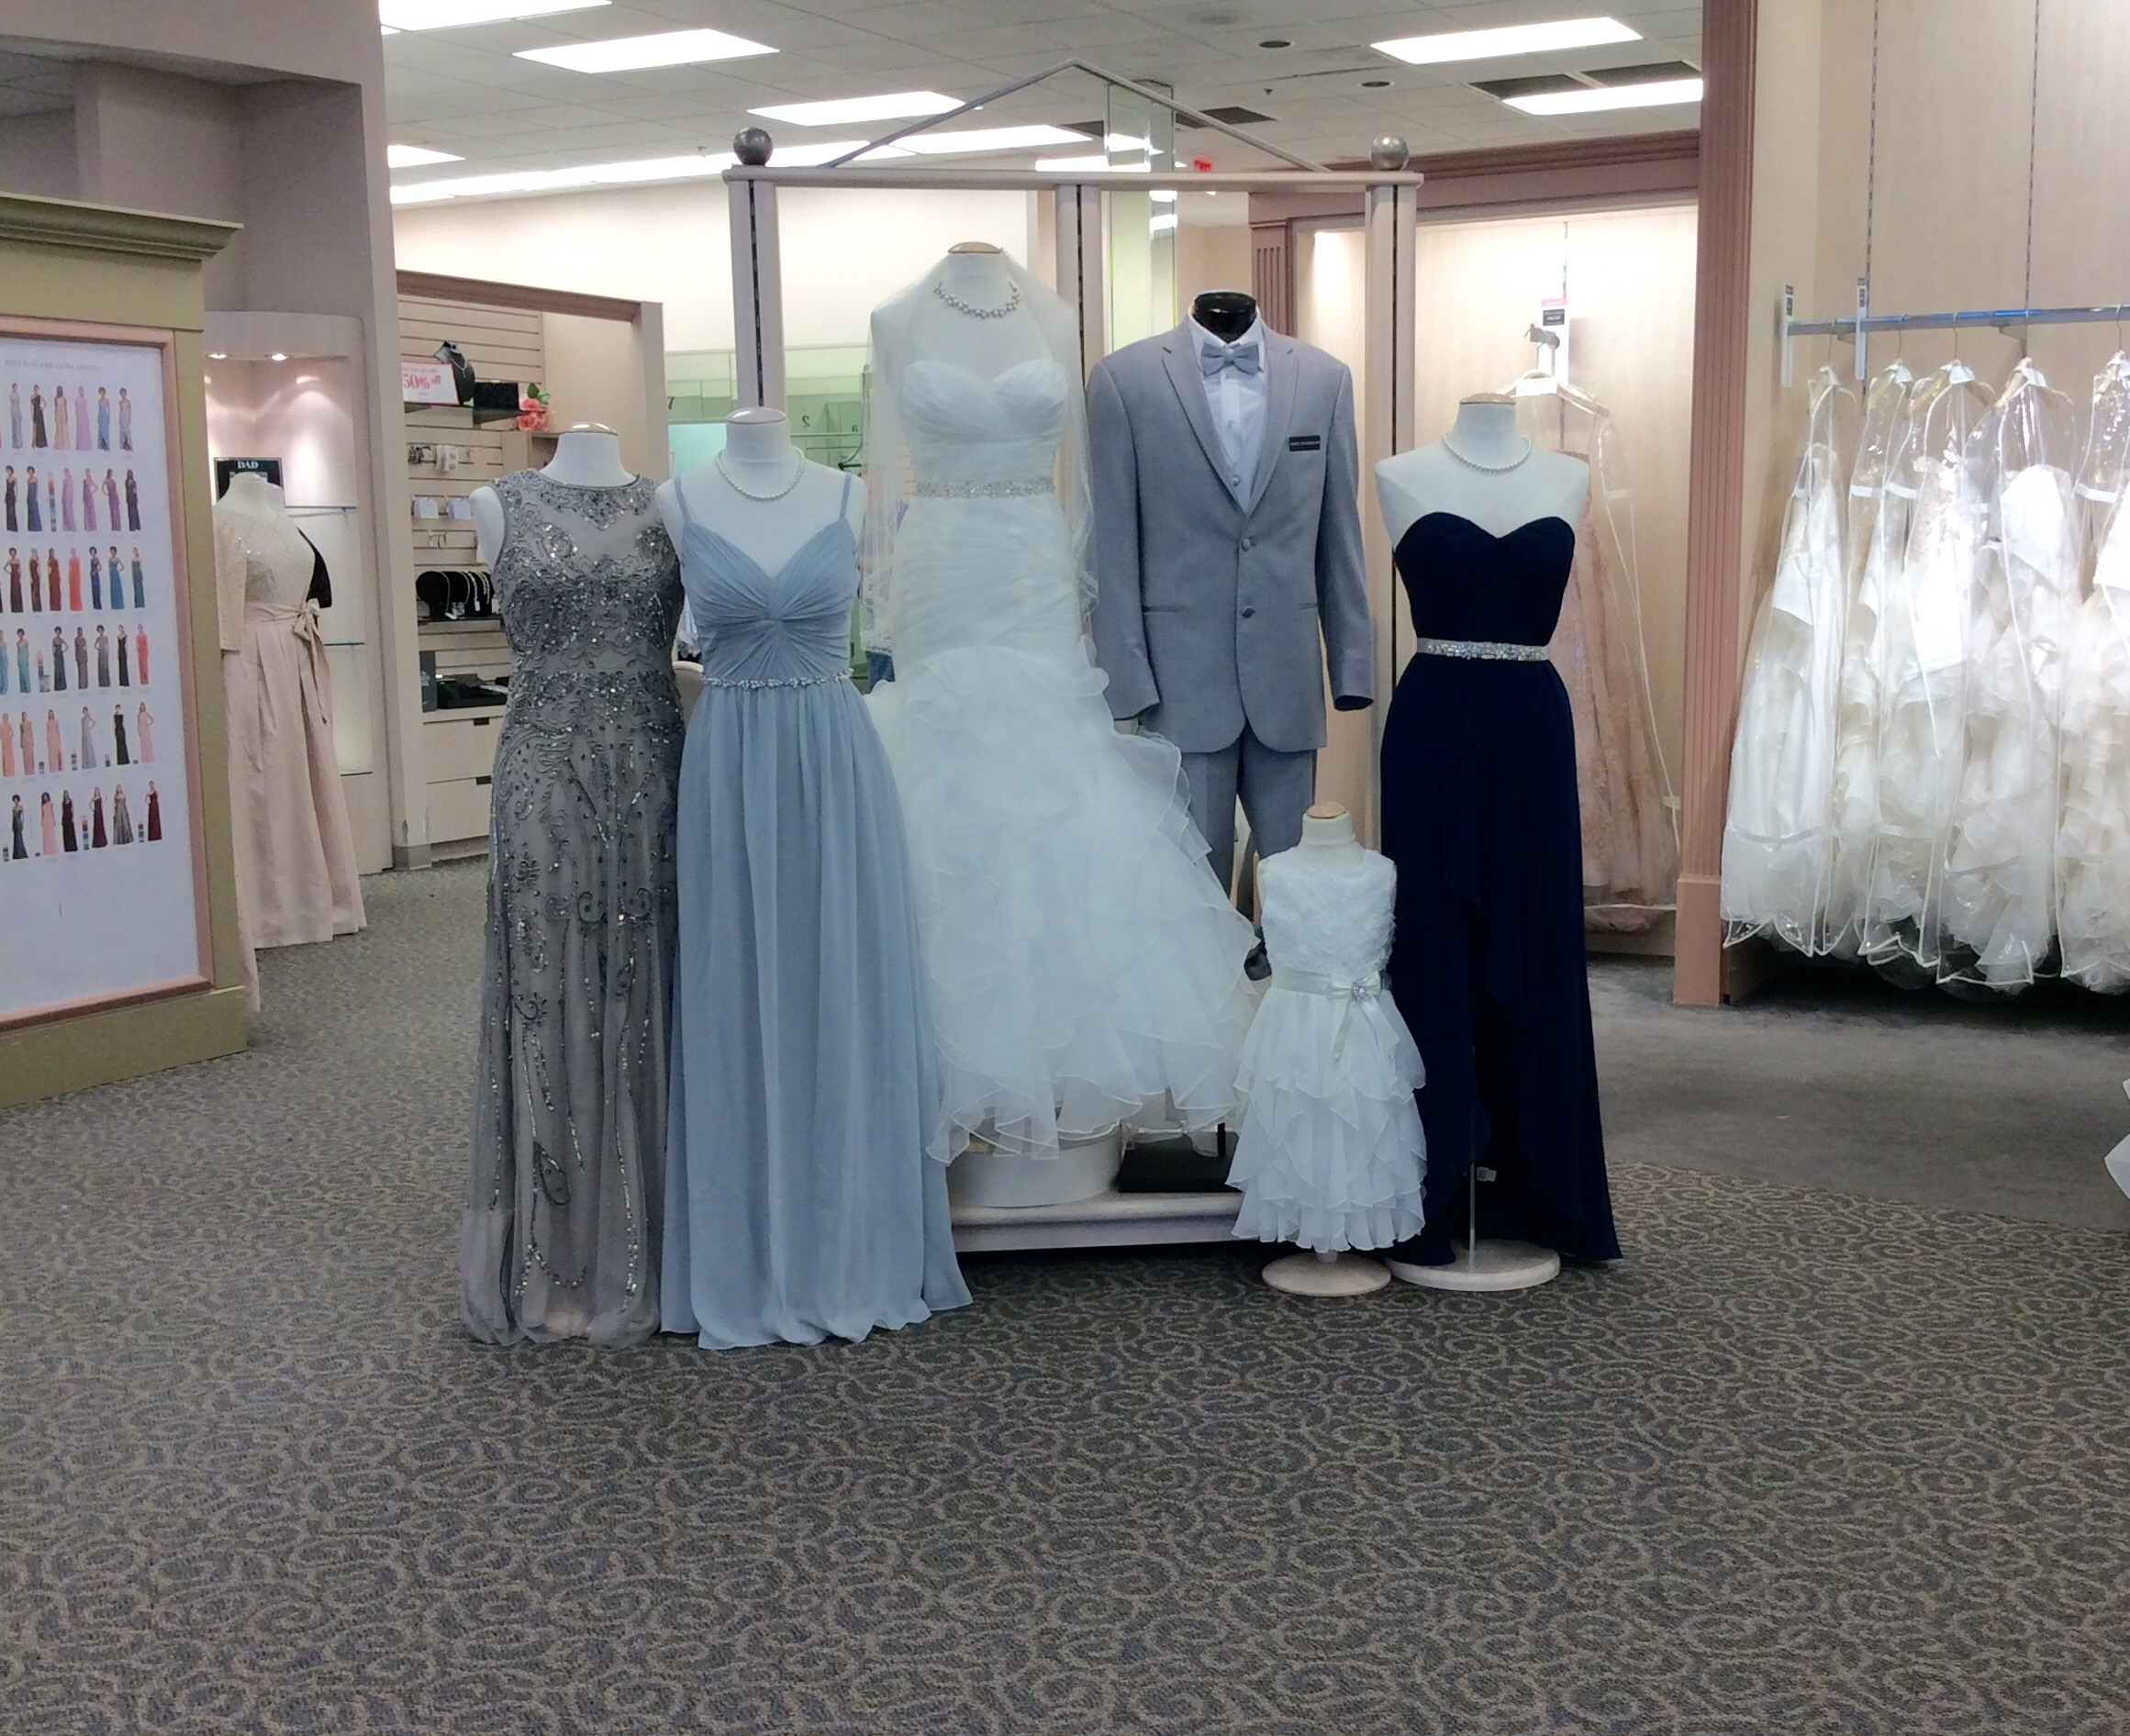 David\'s Bridal 5915 Bluebonnet Blvd, Baton Rouge, LA 70836 - YP.com